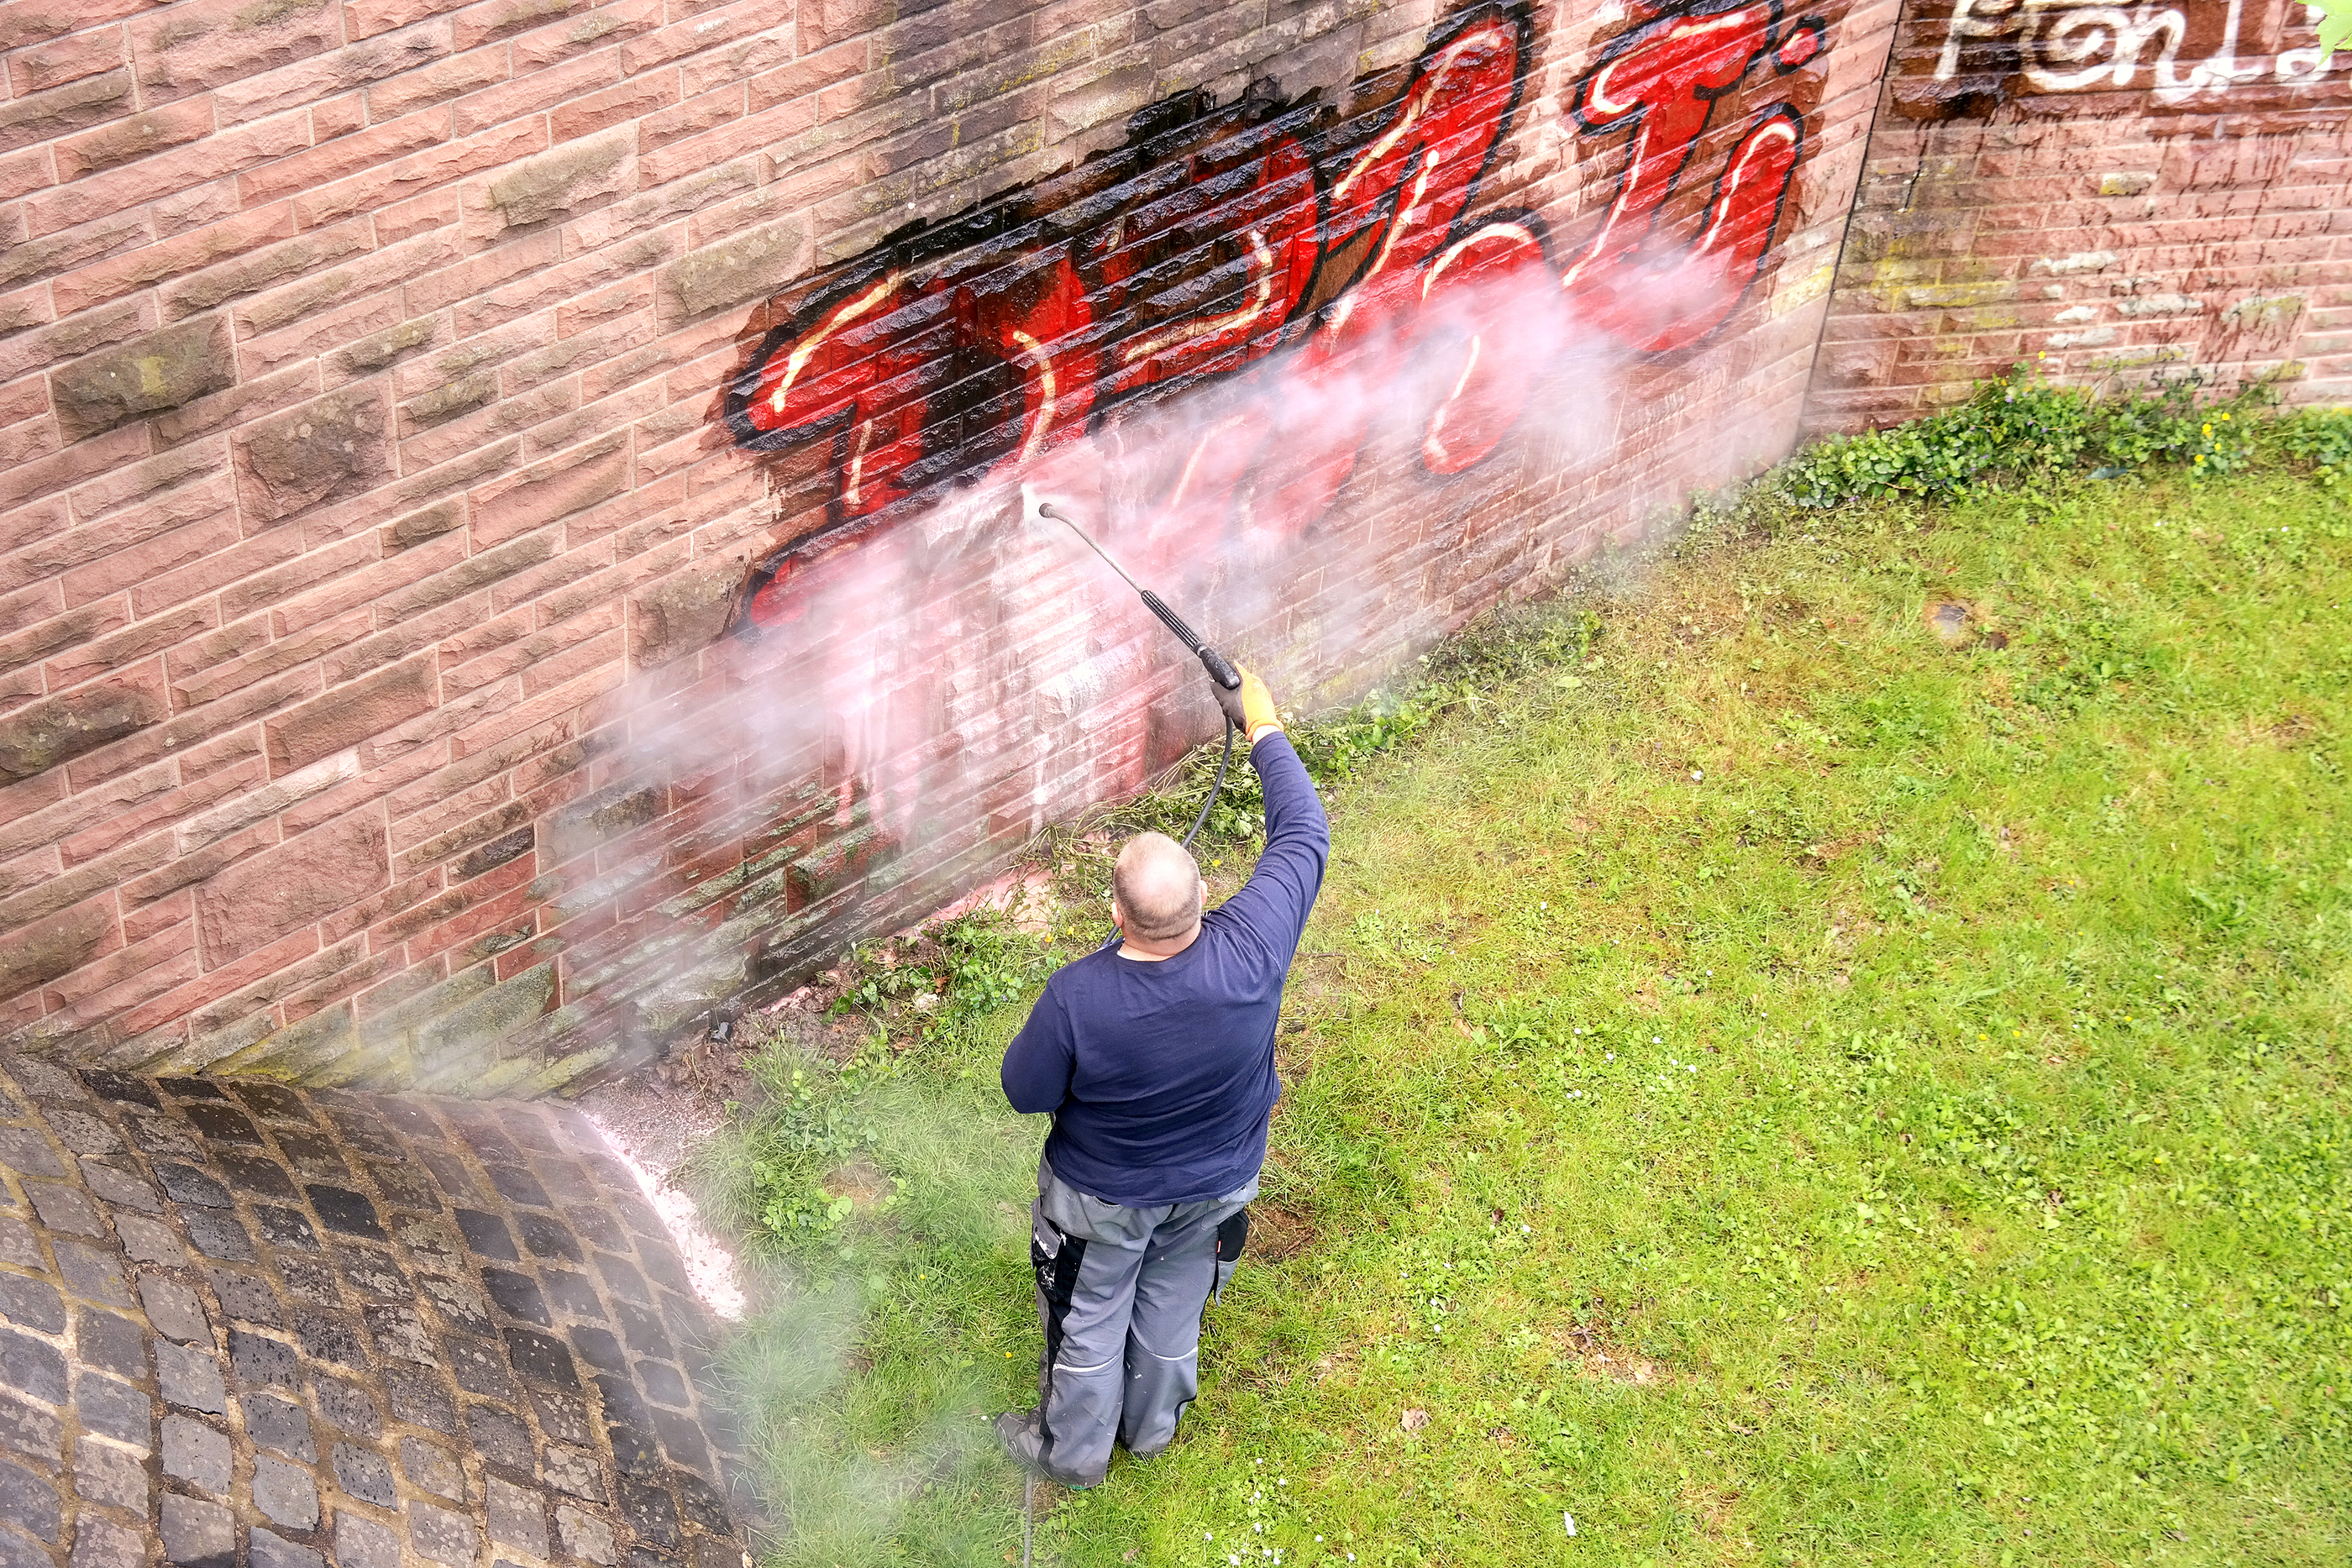 waco graffiti removal services